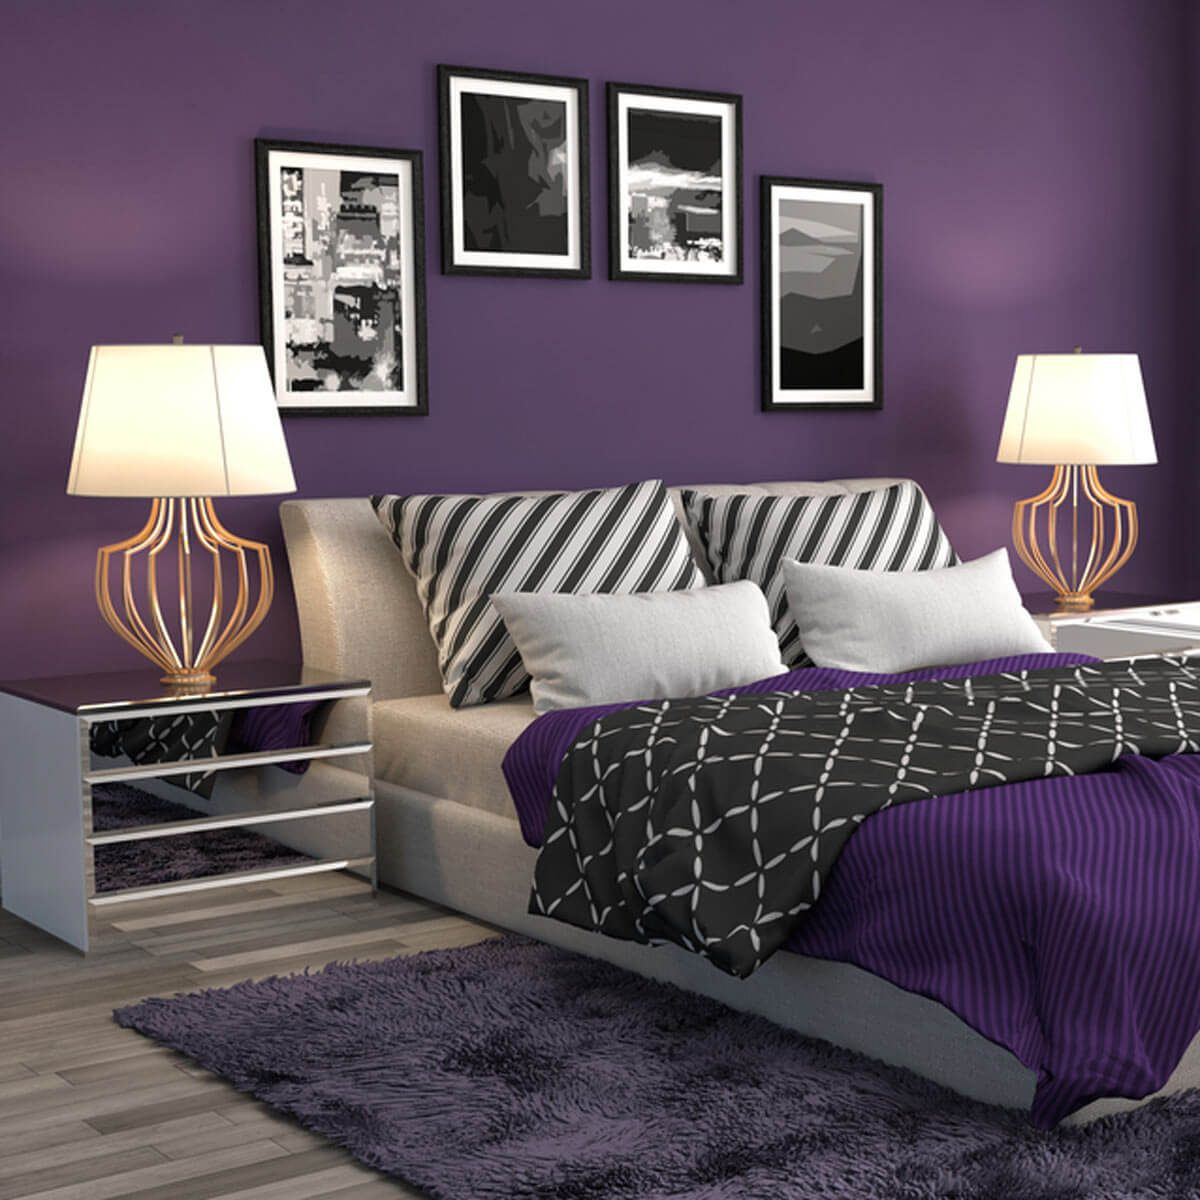 shutterstock_382997047 purple bedroom